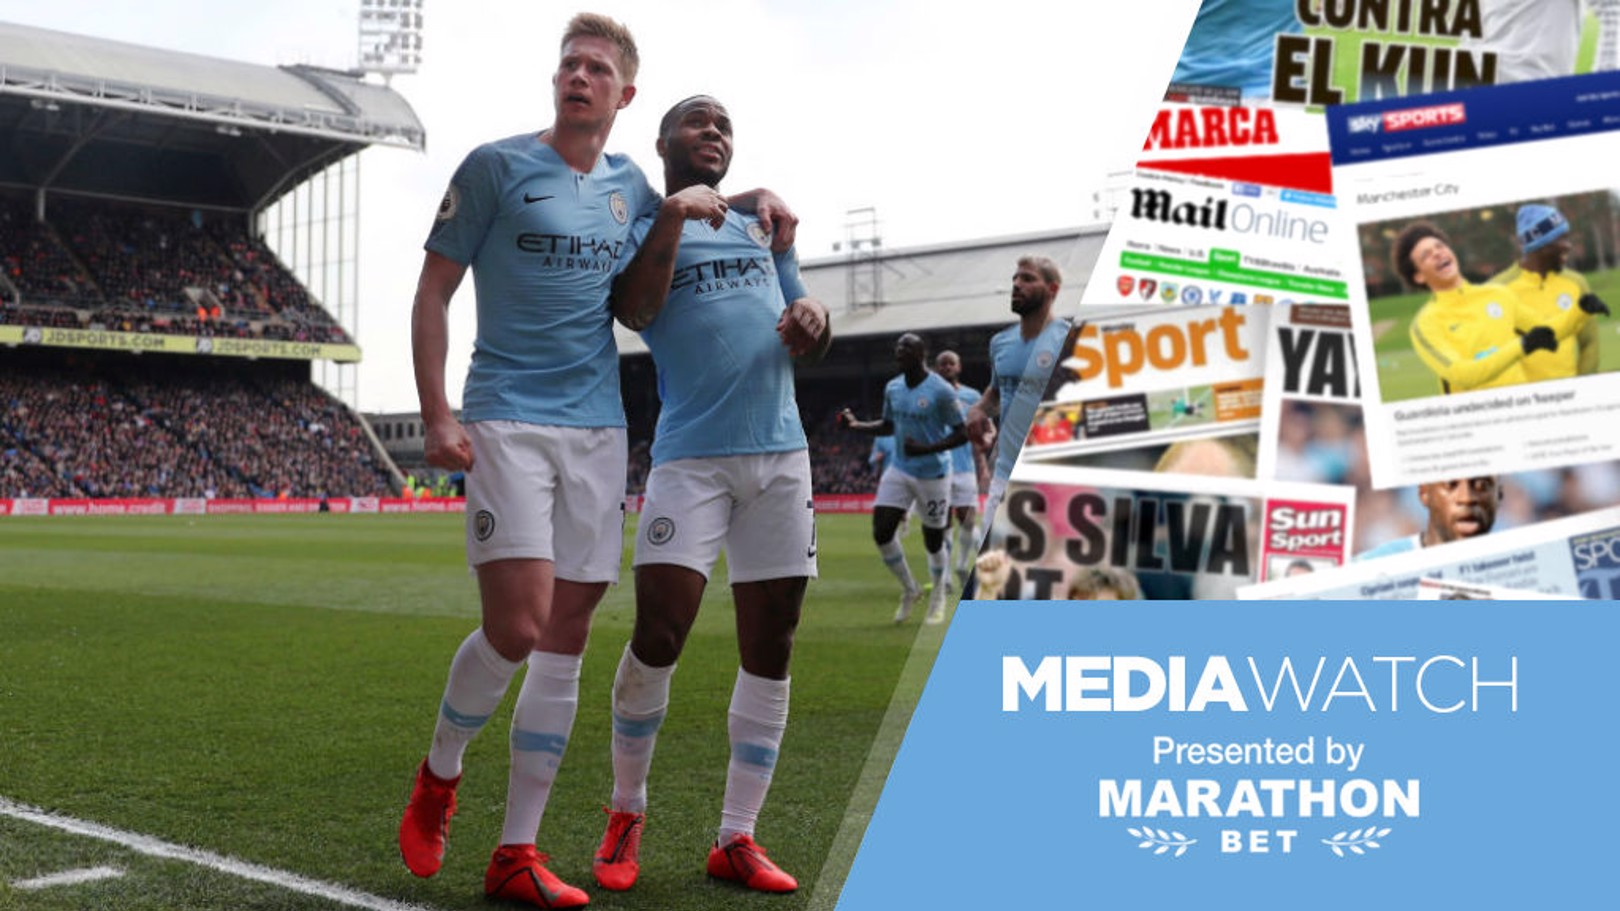 MEDIA WATCH: KDB has penned a fascinating article for The Players' Tribune